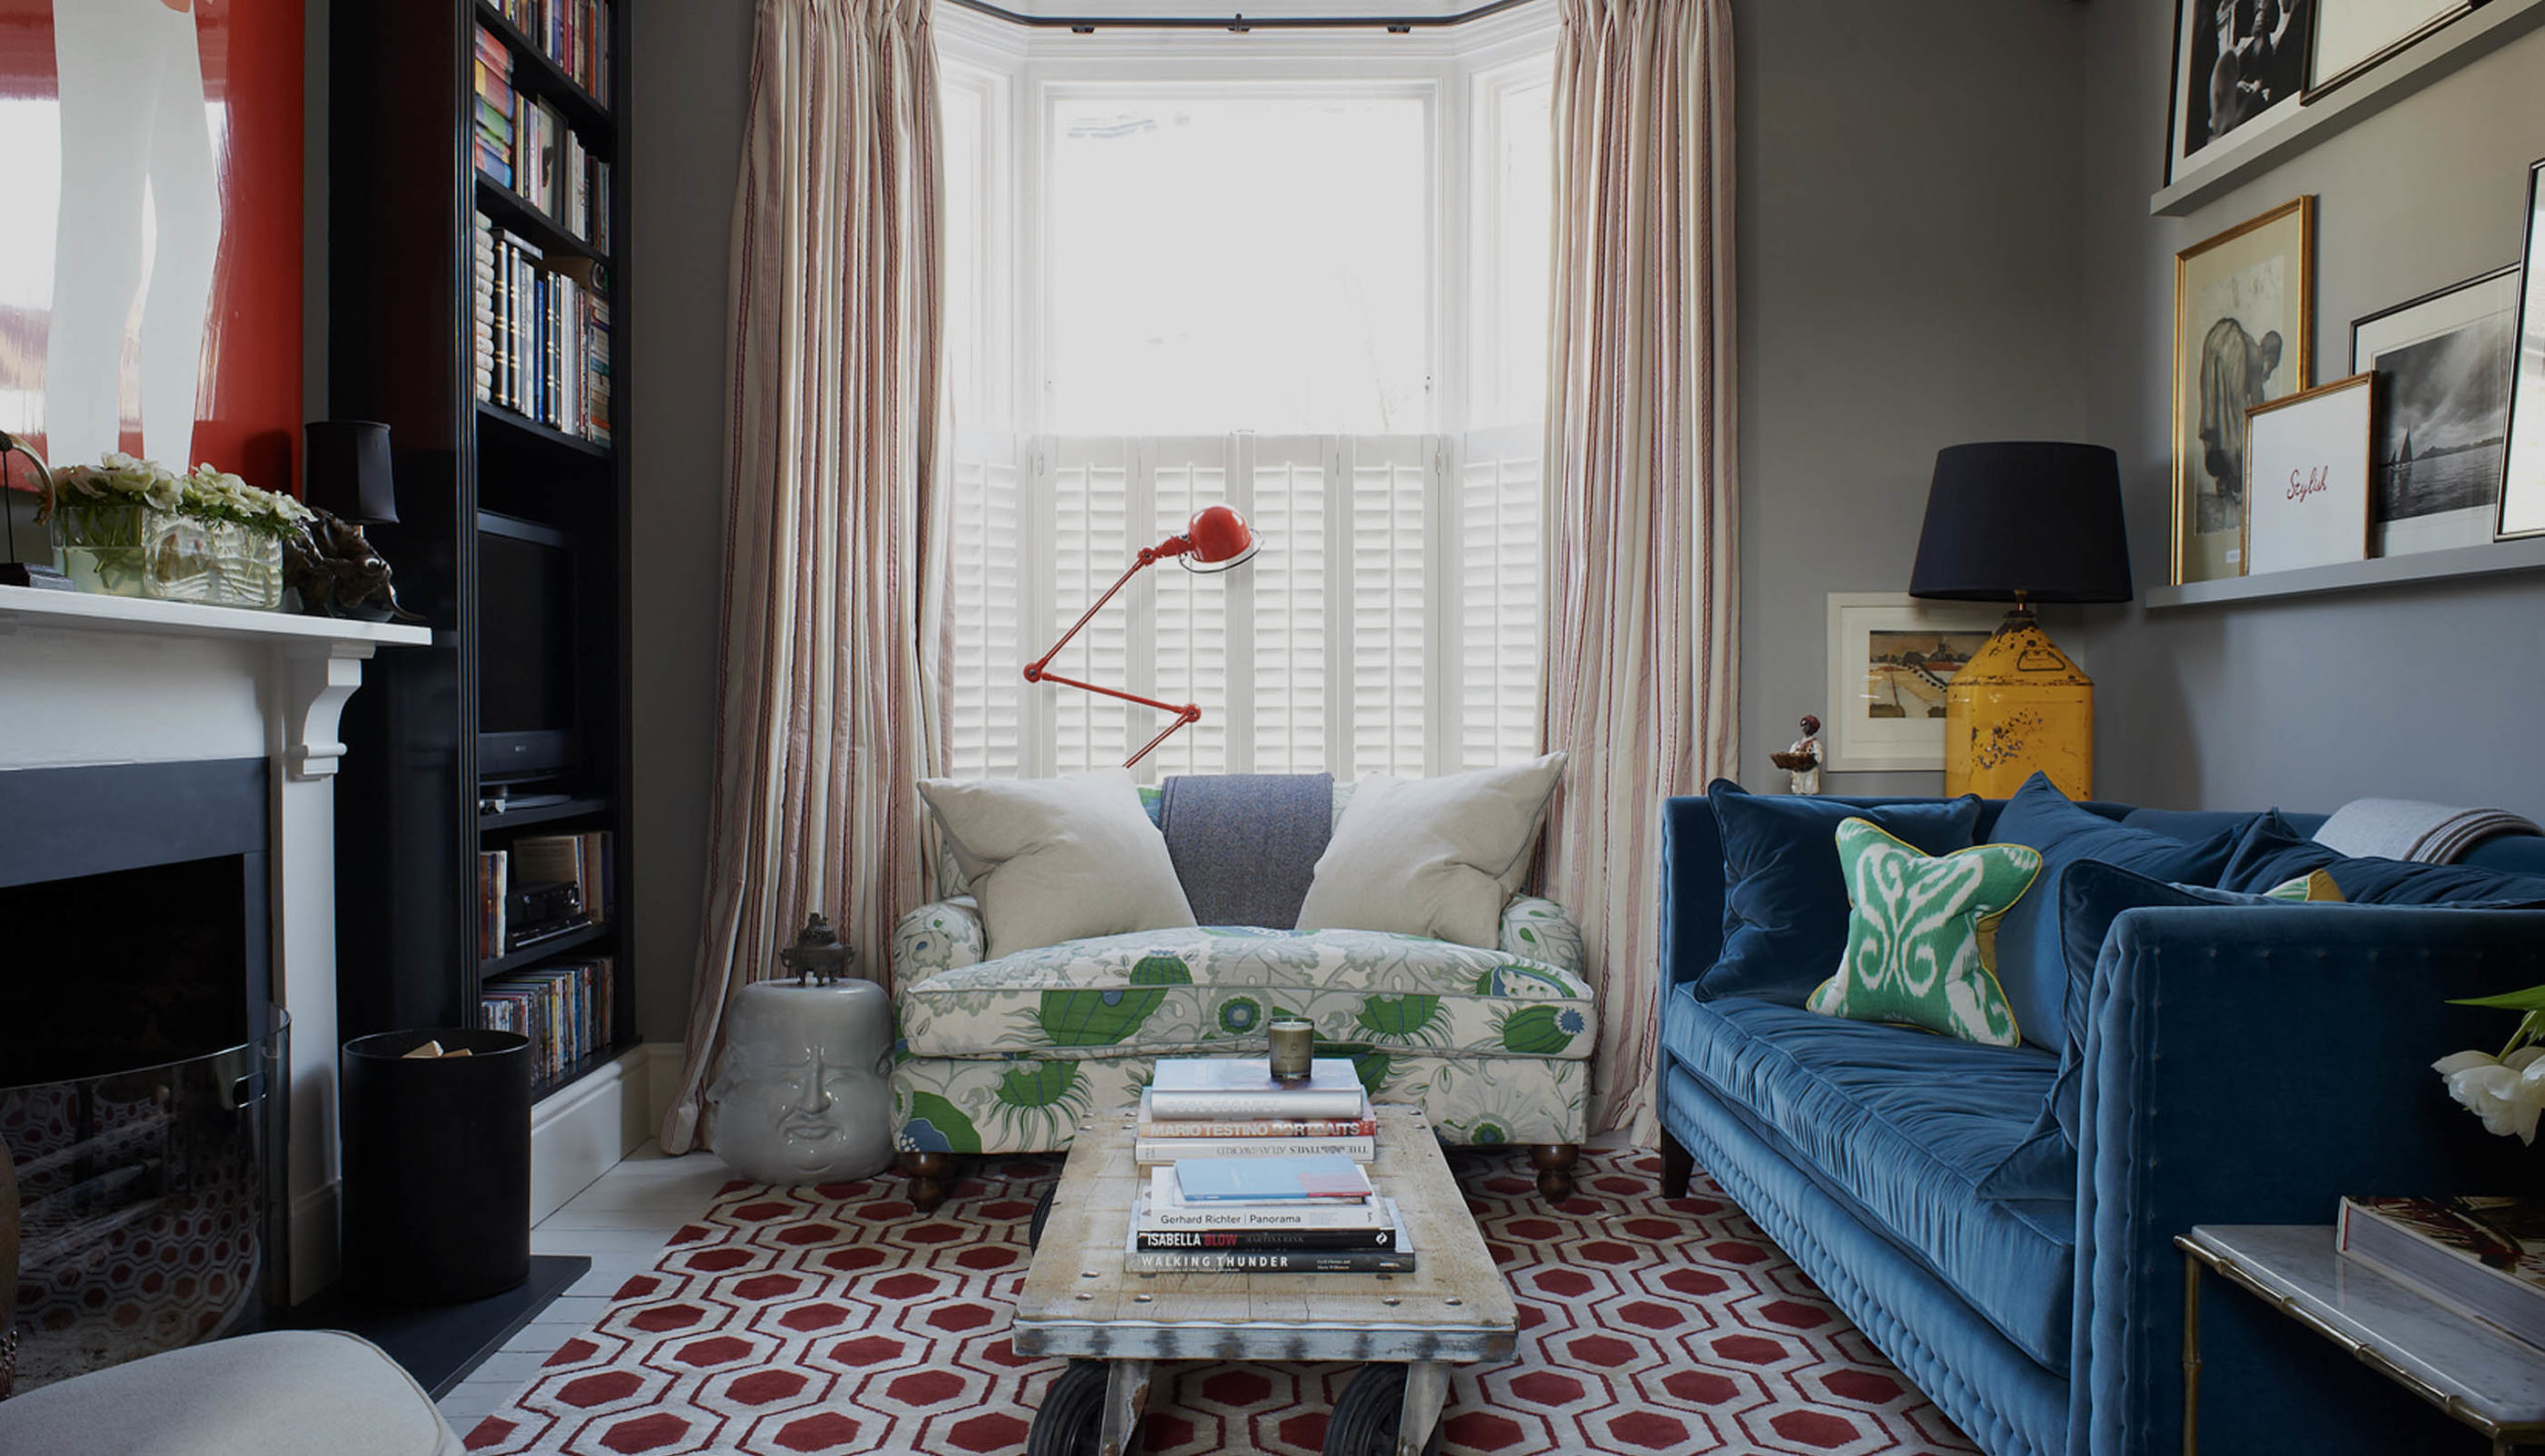 bespoke red rug staged in a small living room